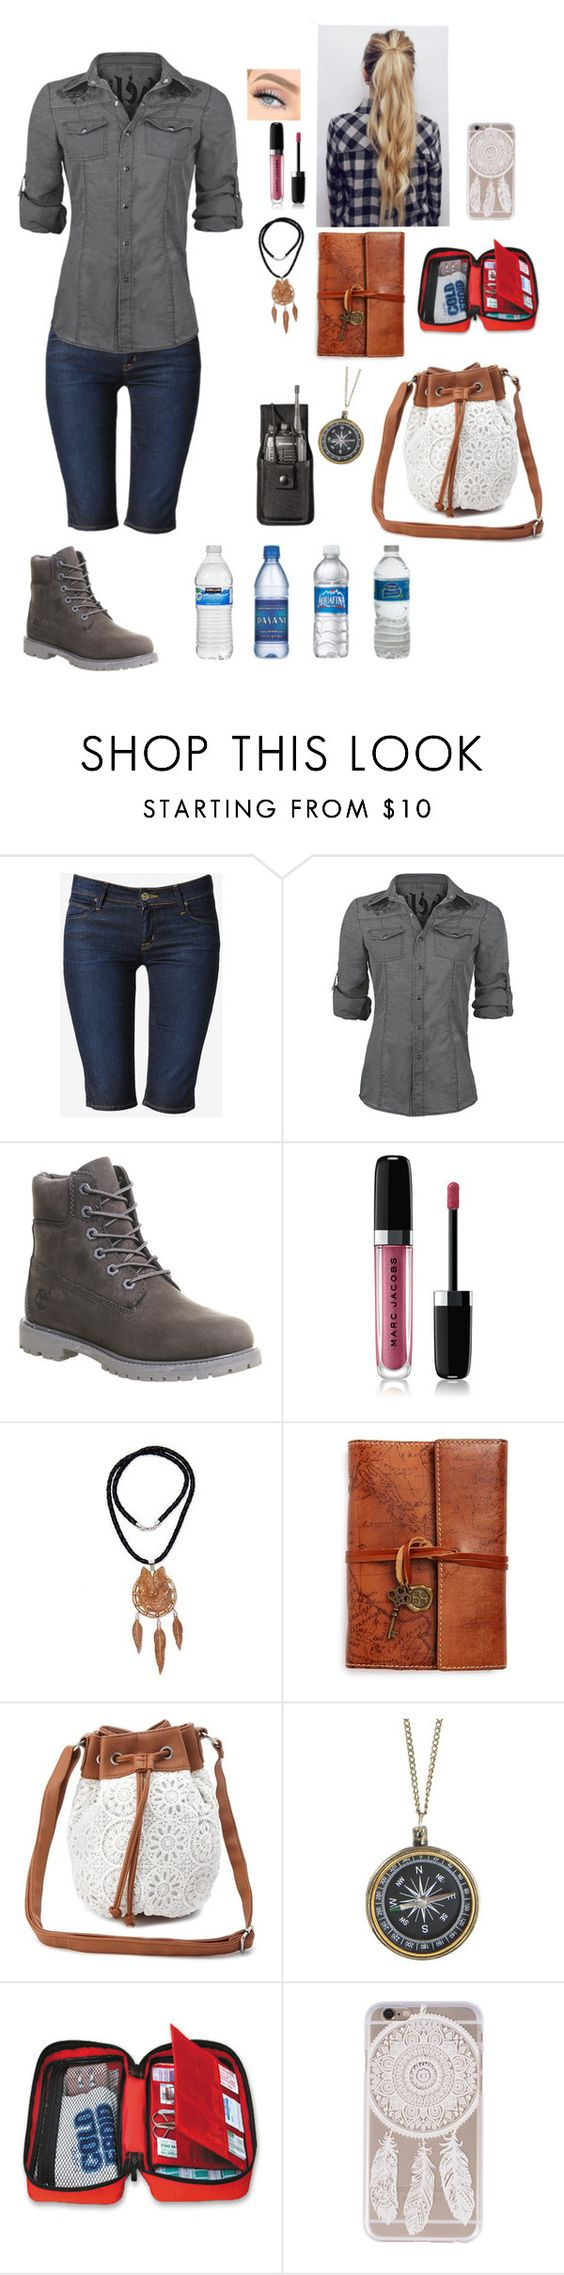 """""""Untitled #679"""" by misswinters ❤ liked on Polyvore featuring Hudson Jeans, Timberland, Marc Jacobs, NOVICA, Patricia Nash and Charlotte Russe"""